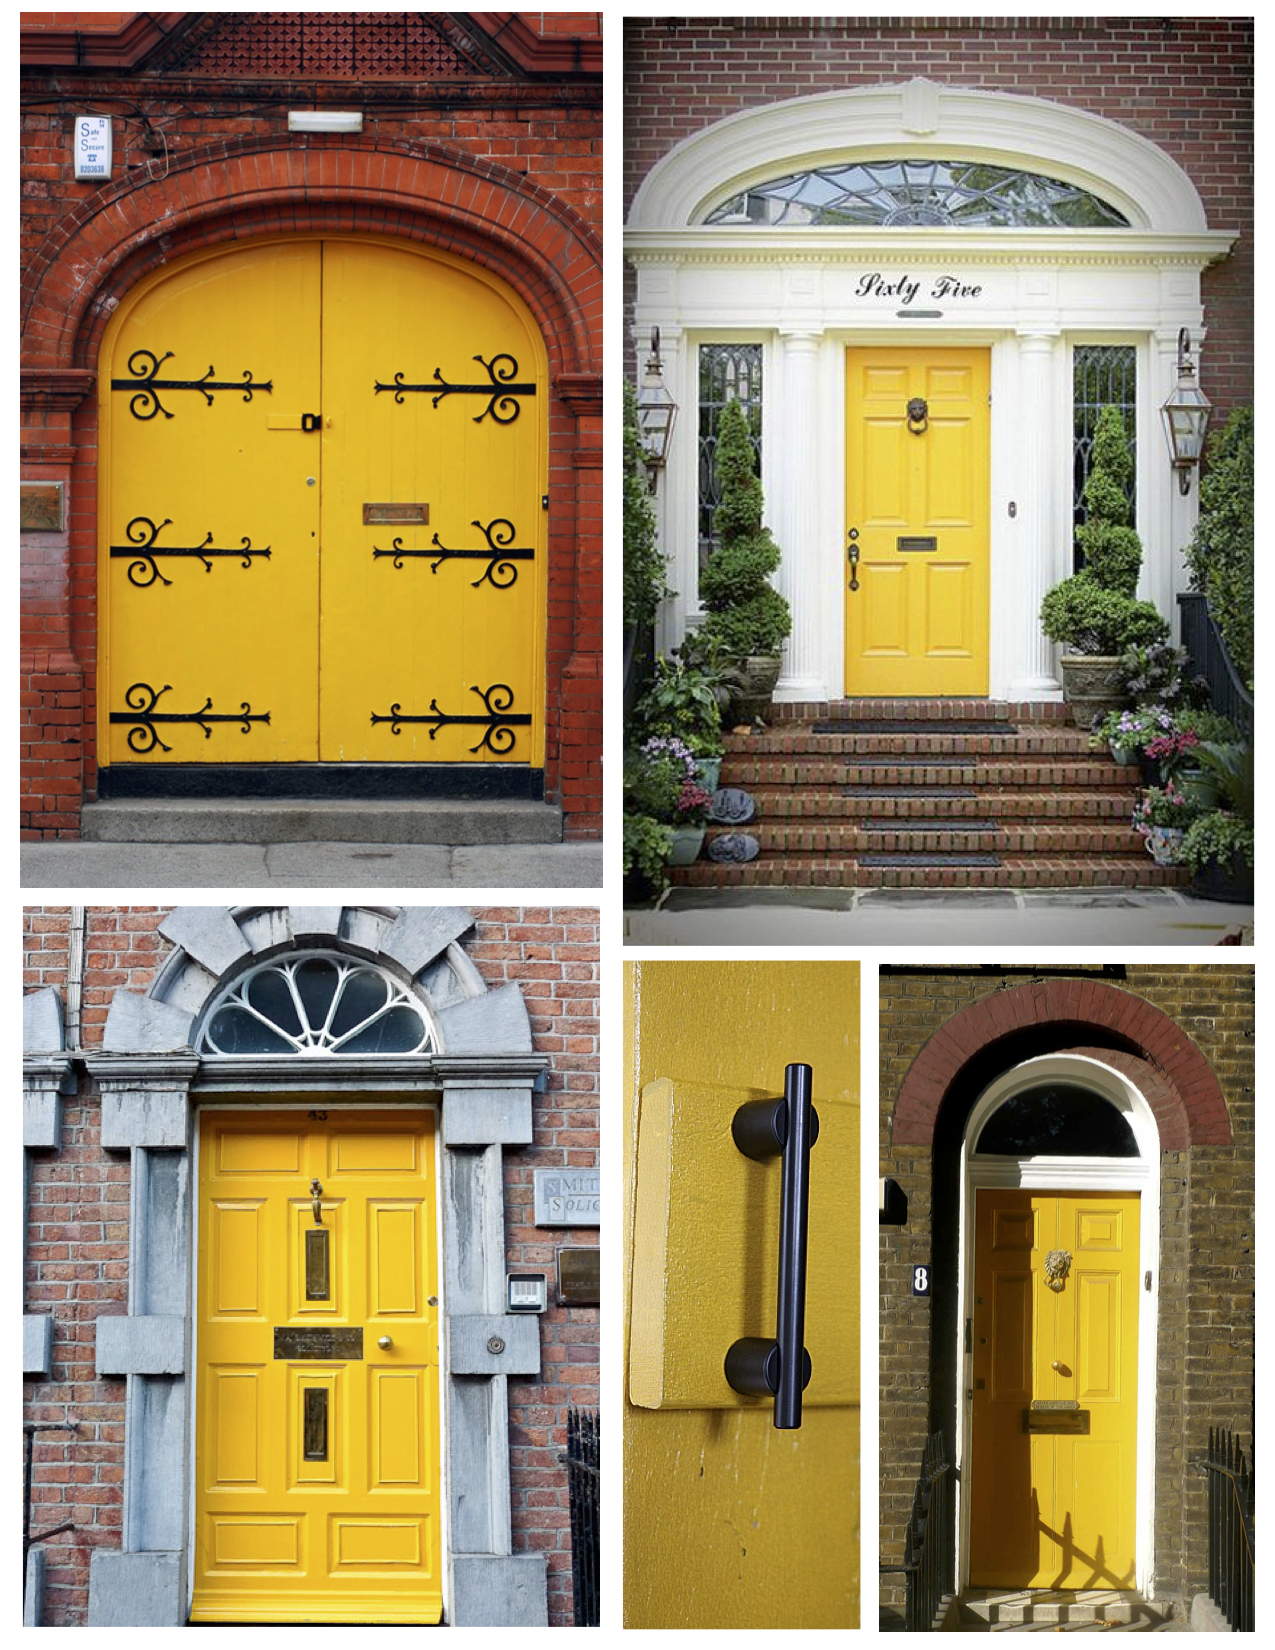 Bold Energy The Brilliant Yellow Exterior Door & exterior door | House Appeal